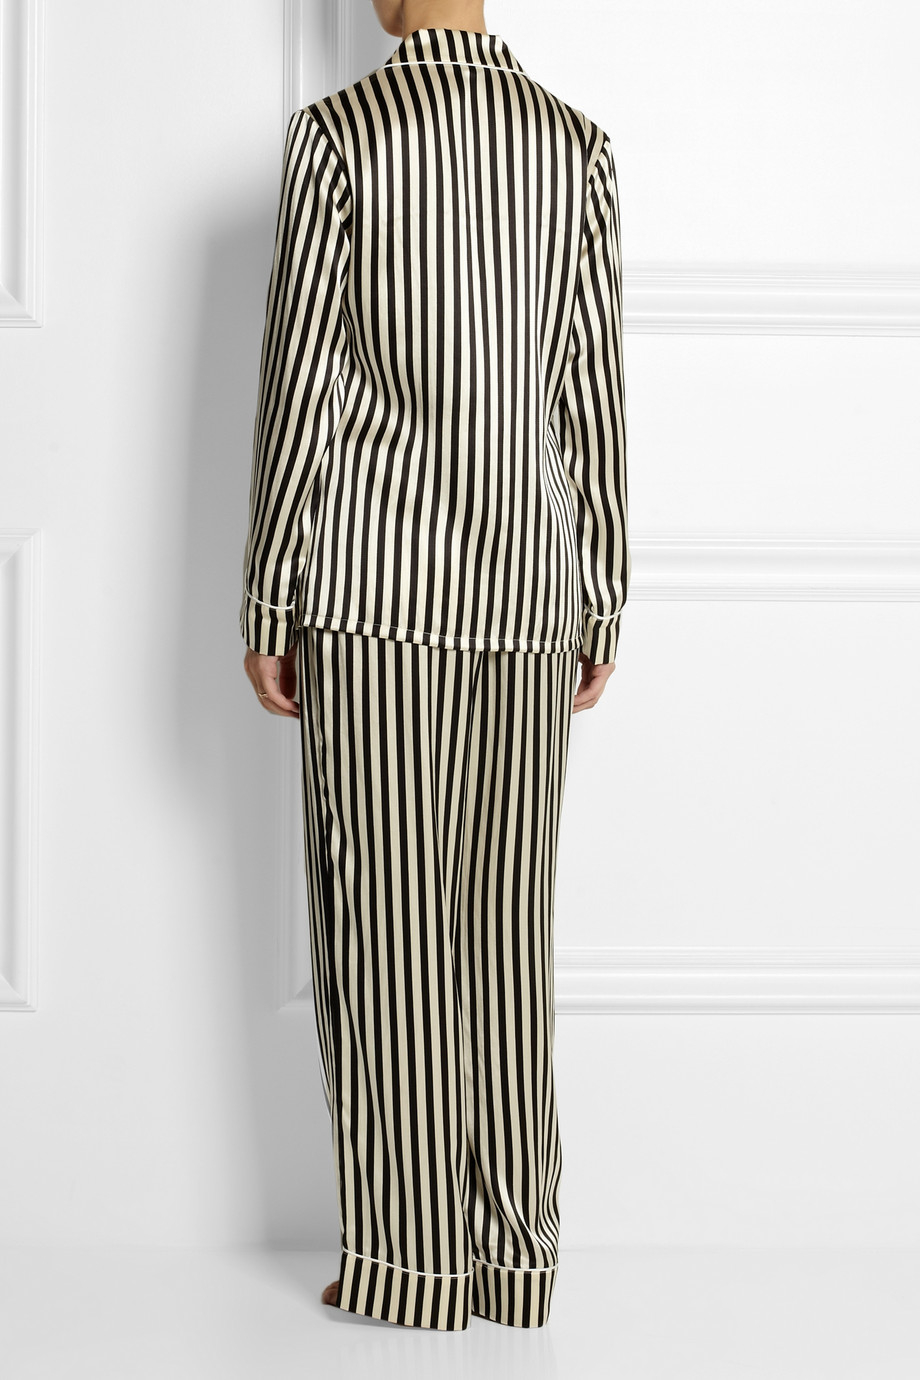 Olivia von halle Lila Nika Striped Silksatin Pajama Set in Black ...